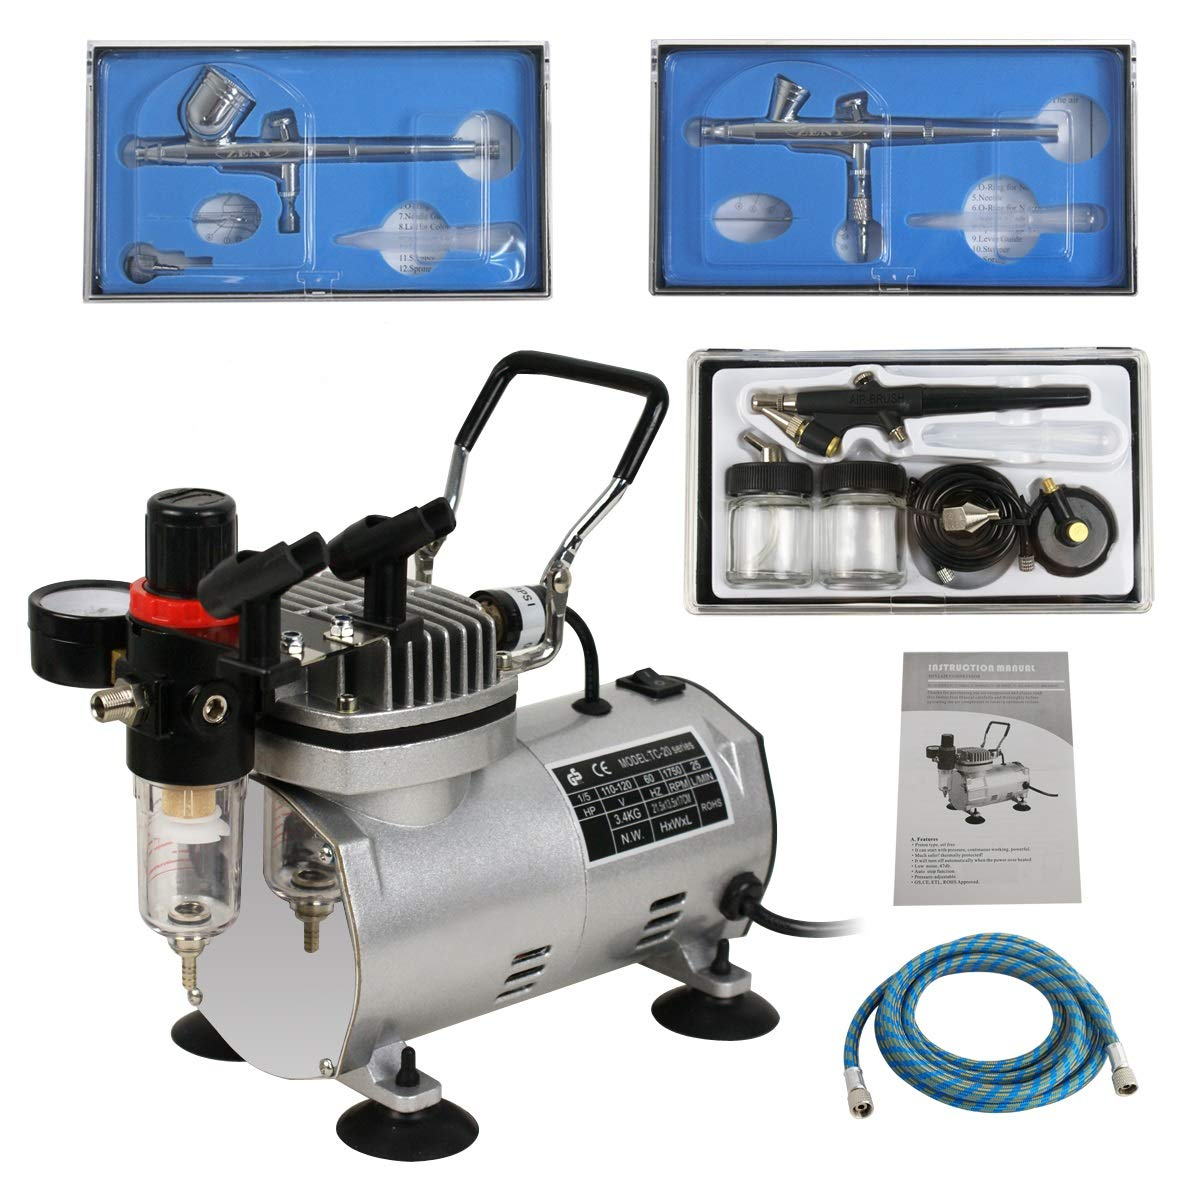 ZENY 1/5HP Multi-Purpose Pro Airbrushing Compressor Kit System w/ 3 Airbrushes, 6' Air Hose & Airbrush Holder, Manual by ZENY